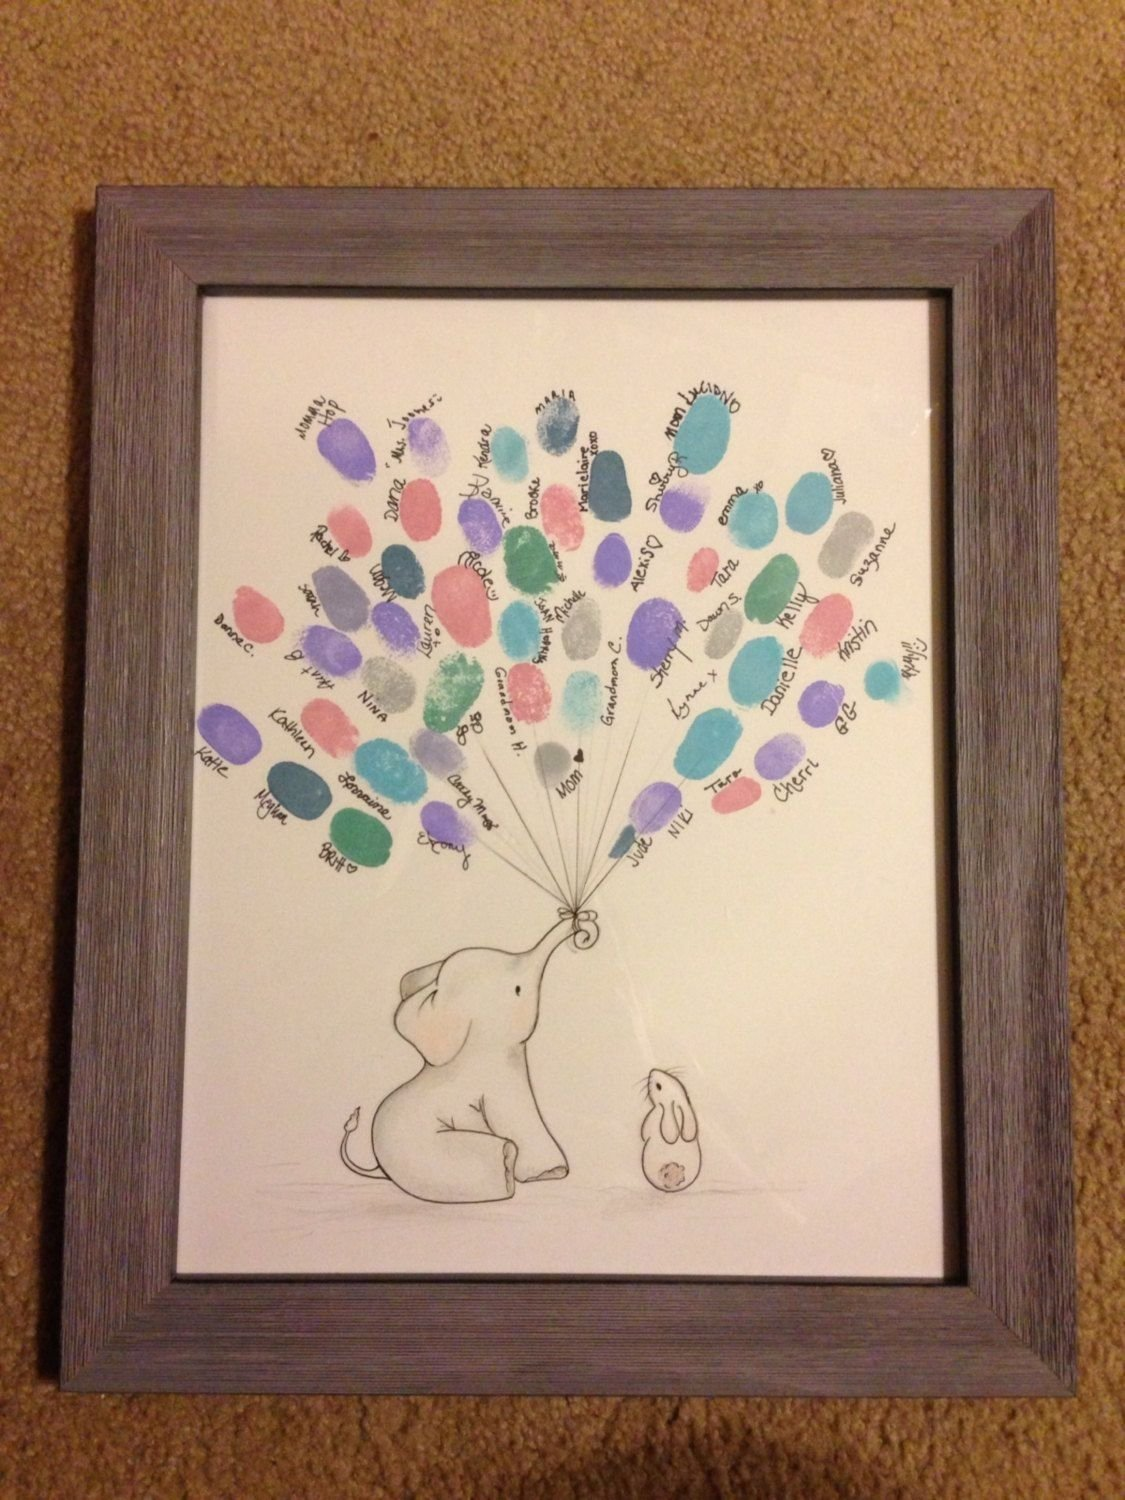 10 Awesome Baby Shower Guest Book Ideas elephant baby shower guestbook alternative thumbprint balloons 2020